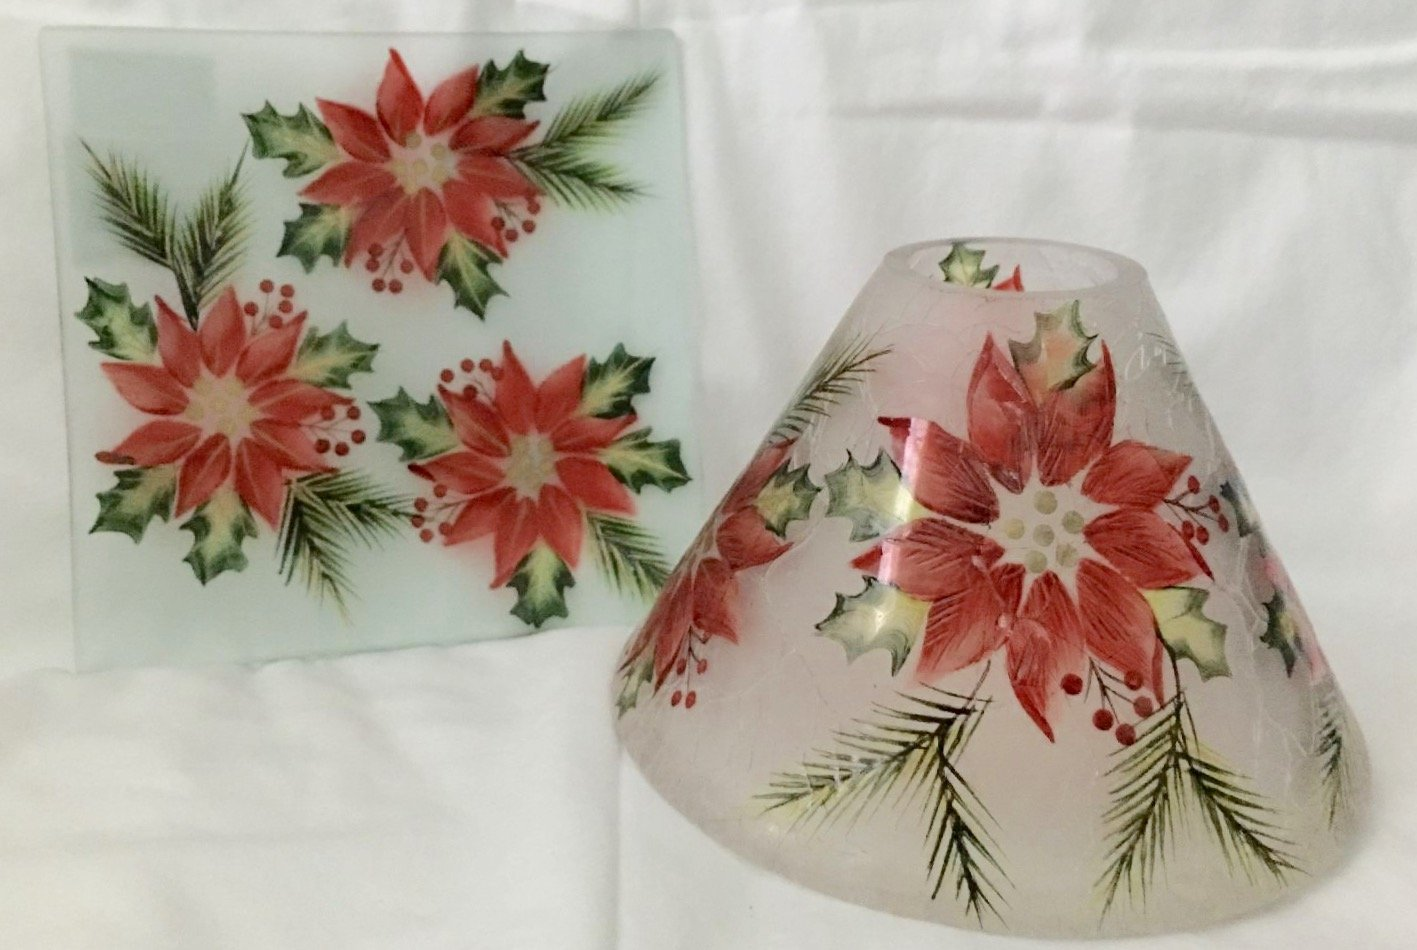 Yankee Candle Large Red and Green Poinsettia Holiday Jar Shade Candle Topper and Candle Tray/Plate